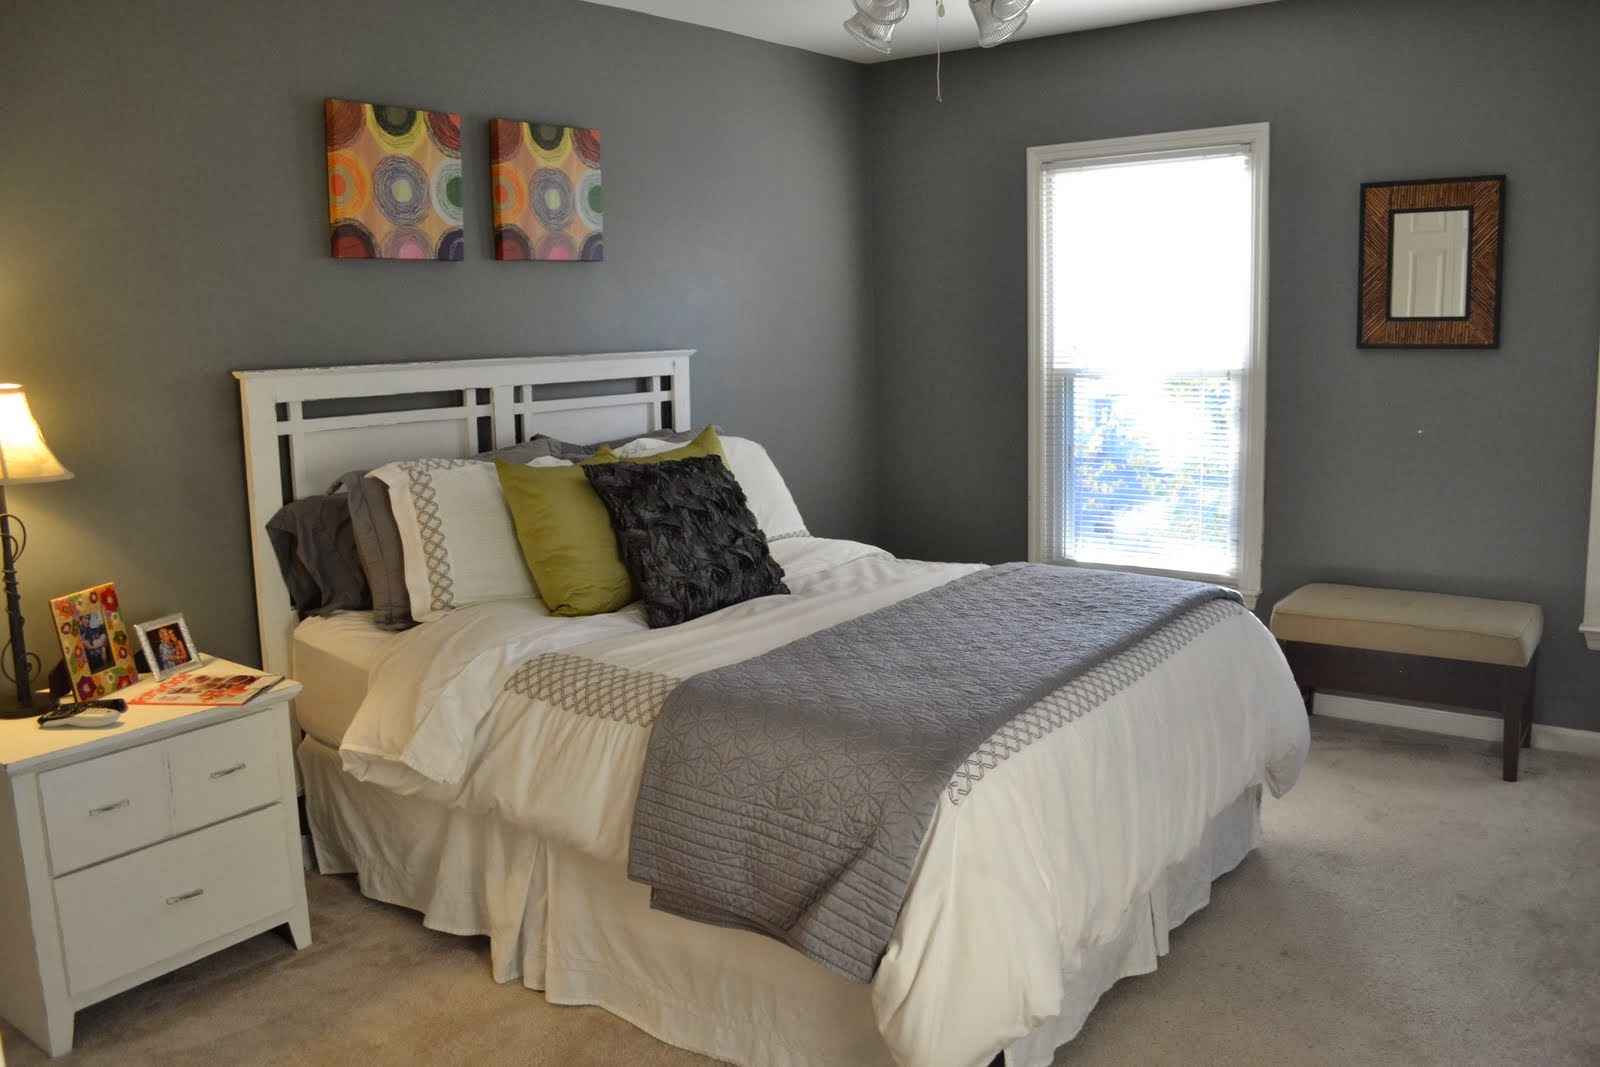 Image gallery sherwin williams cityscape for Cityscape bedroom ideas